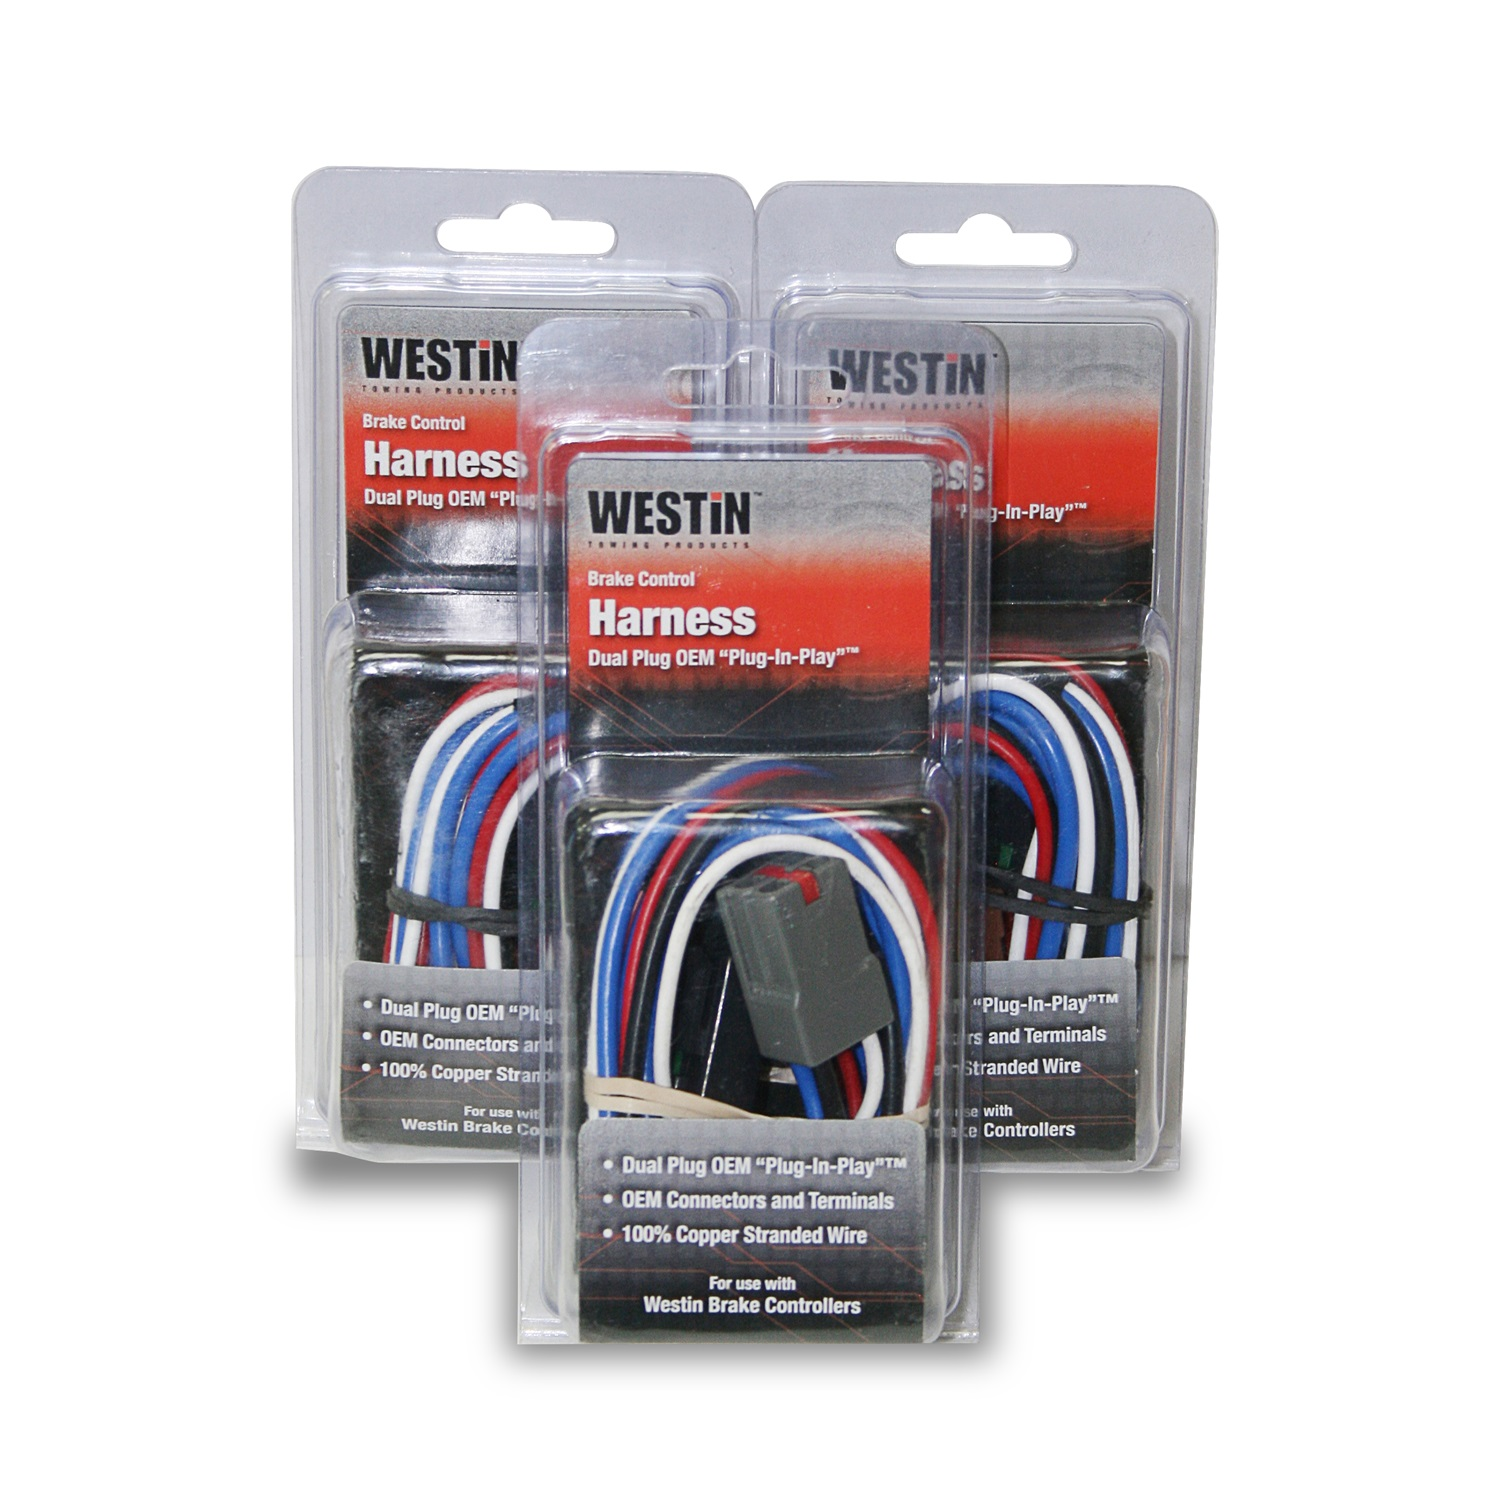 Acadia Trailer Wiring Harness Trusted Diagrams 16 Utility Westin 65 75289 Fits Enclave Outlook